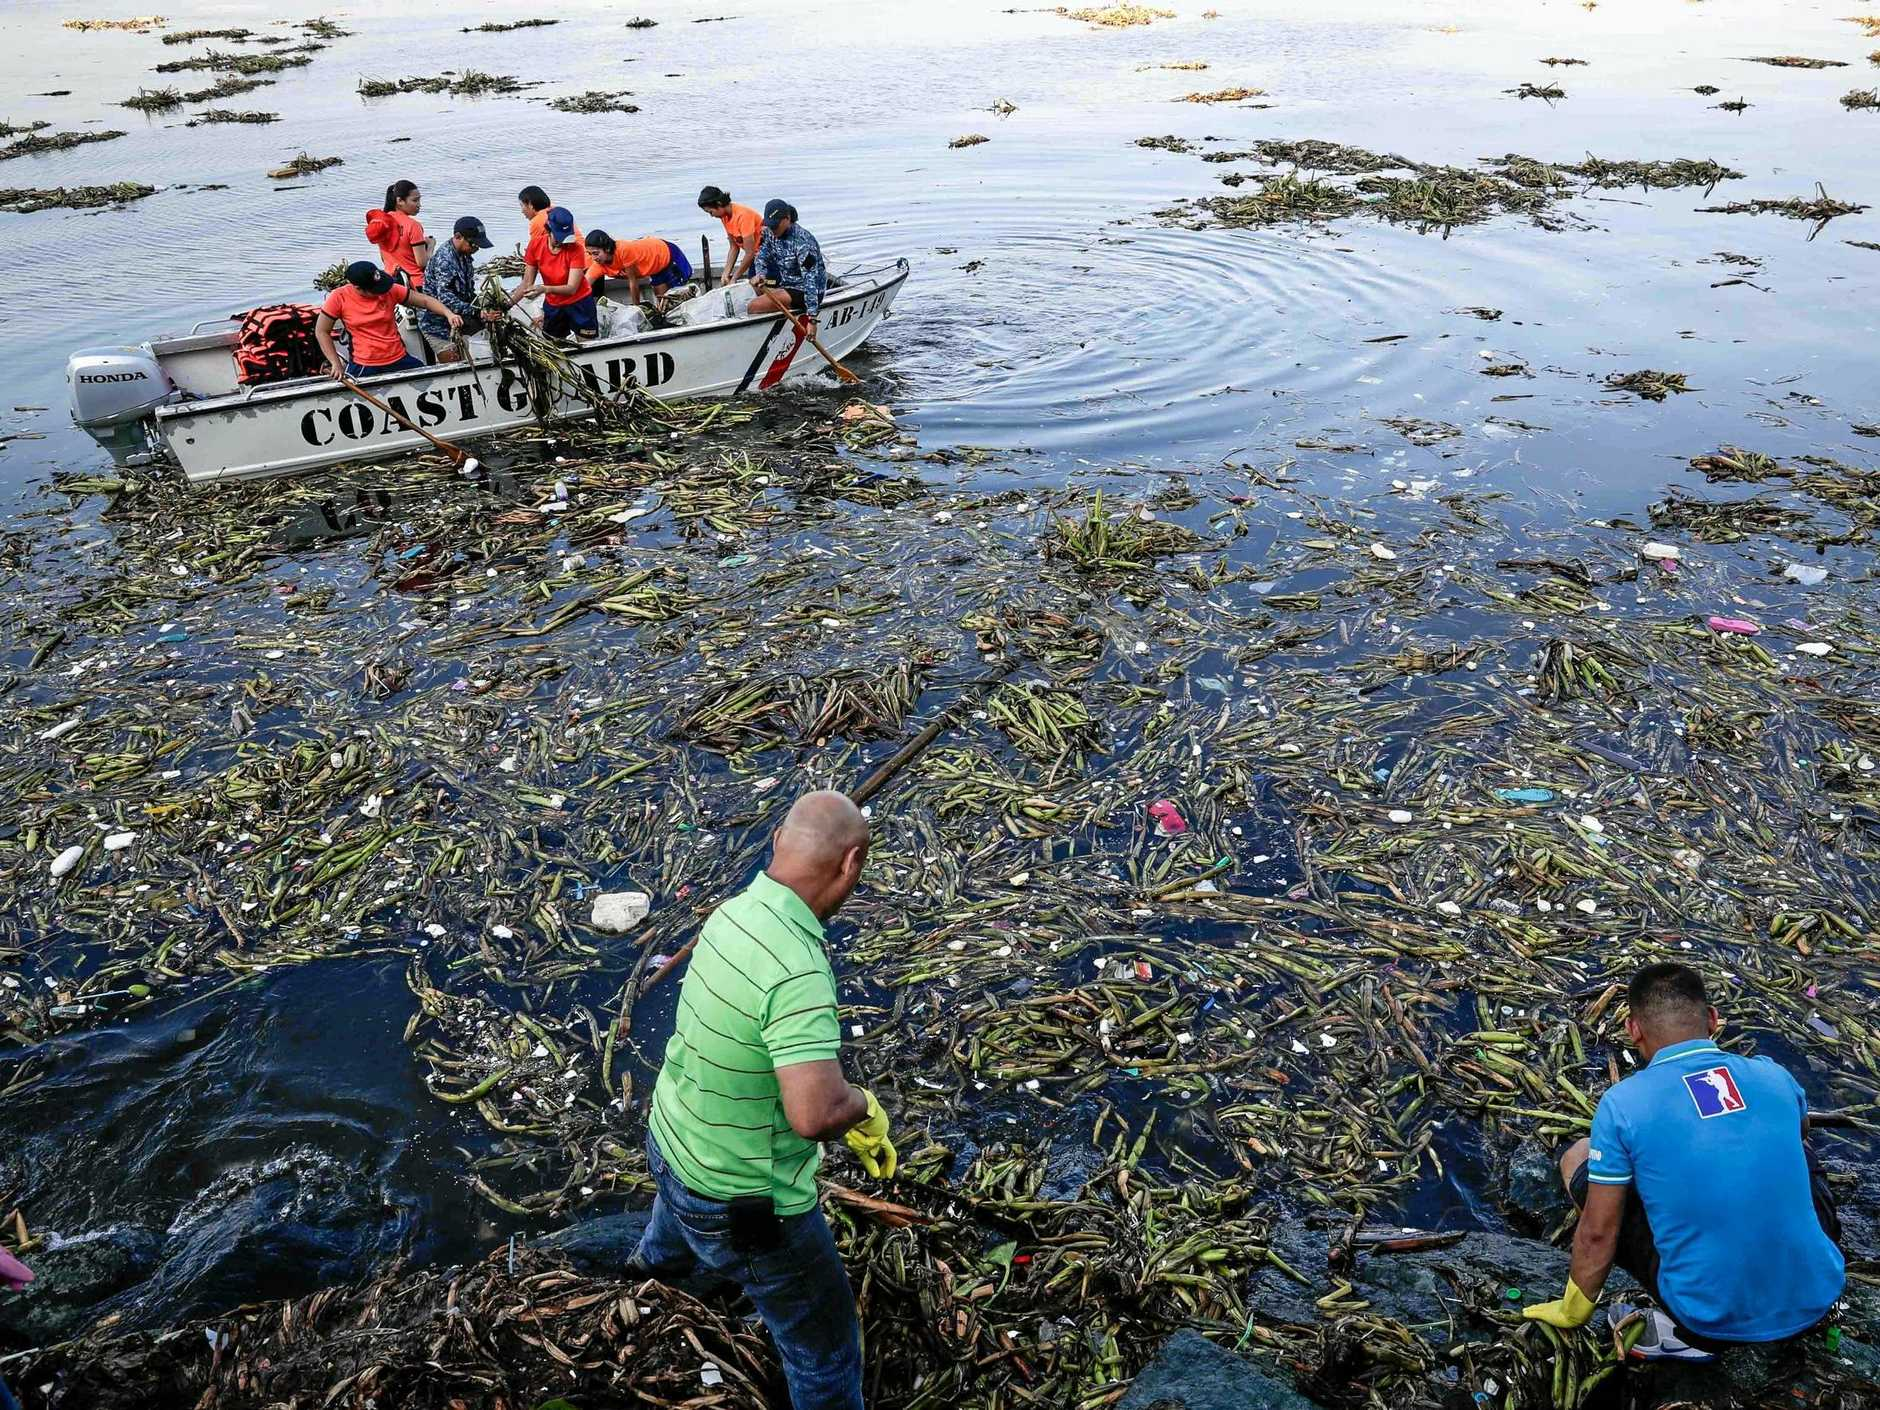 Volunteers collect garbage during the International Coastal Clean-up Day in Manila Bay, the Philippines, on September 16 last year.